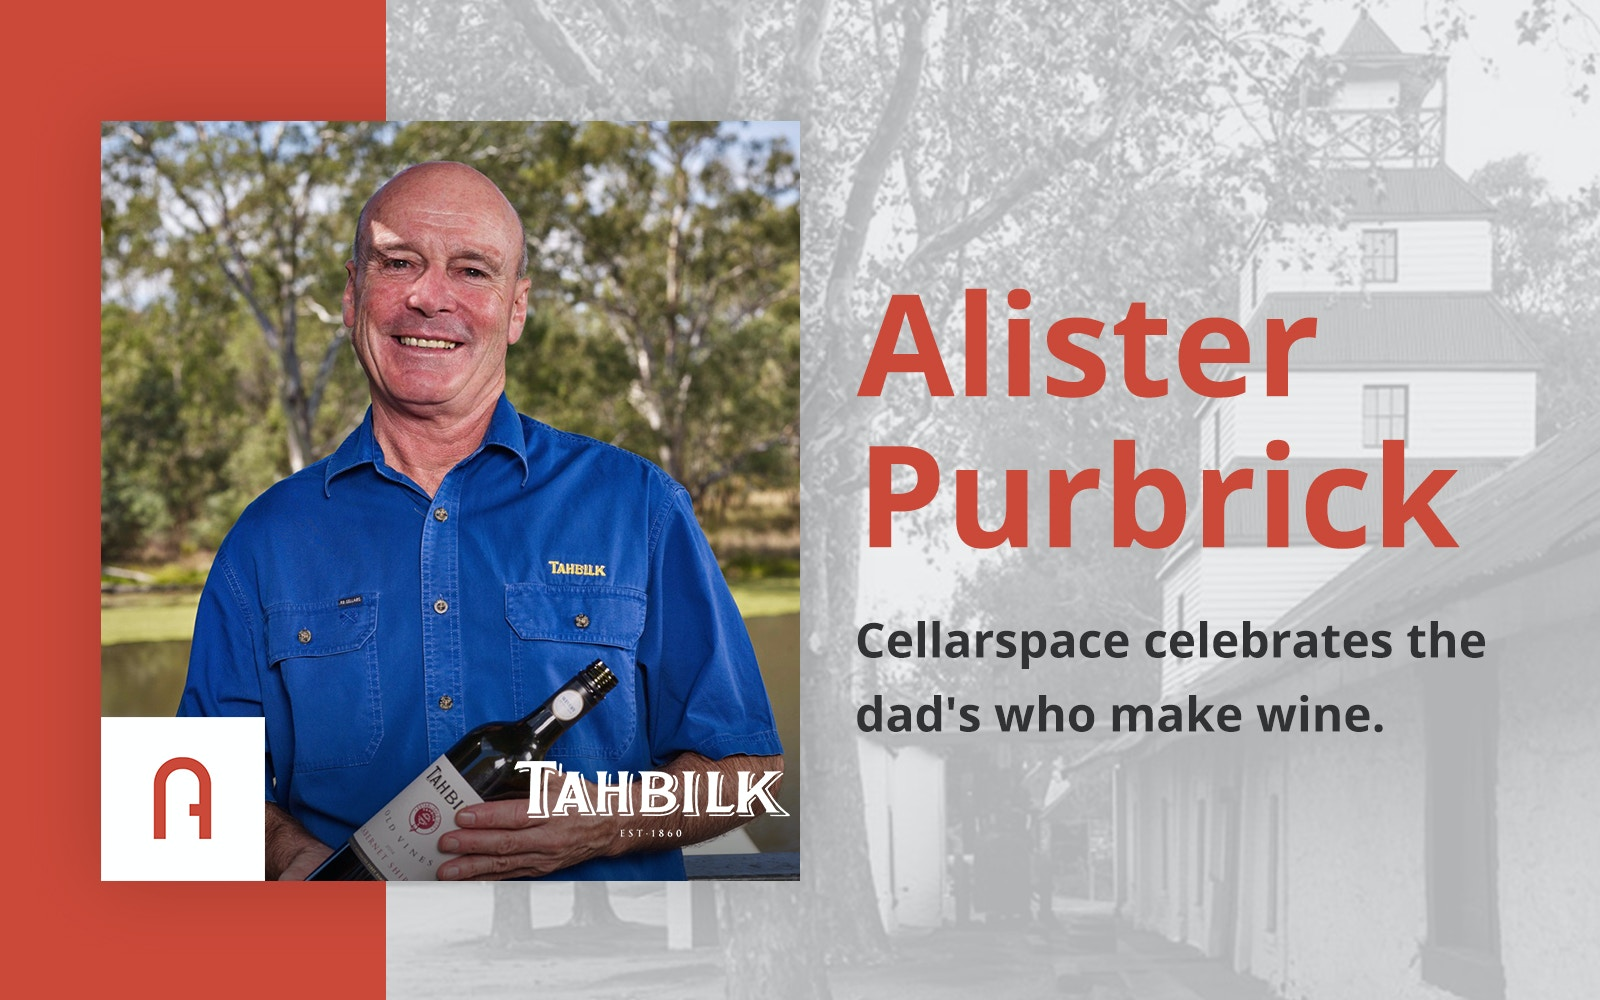 Meet the Winemaker-Alister Purbrick